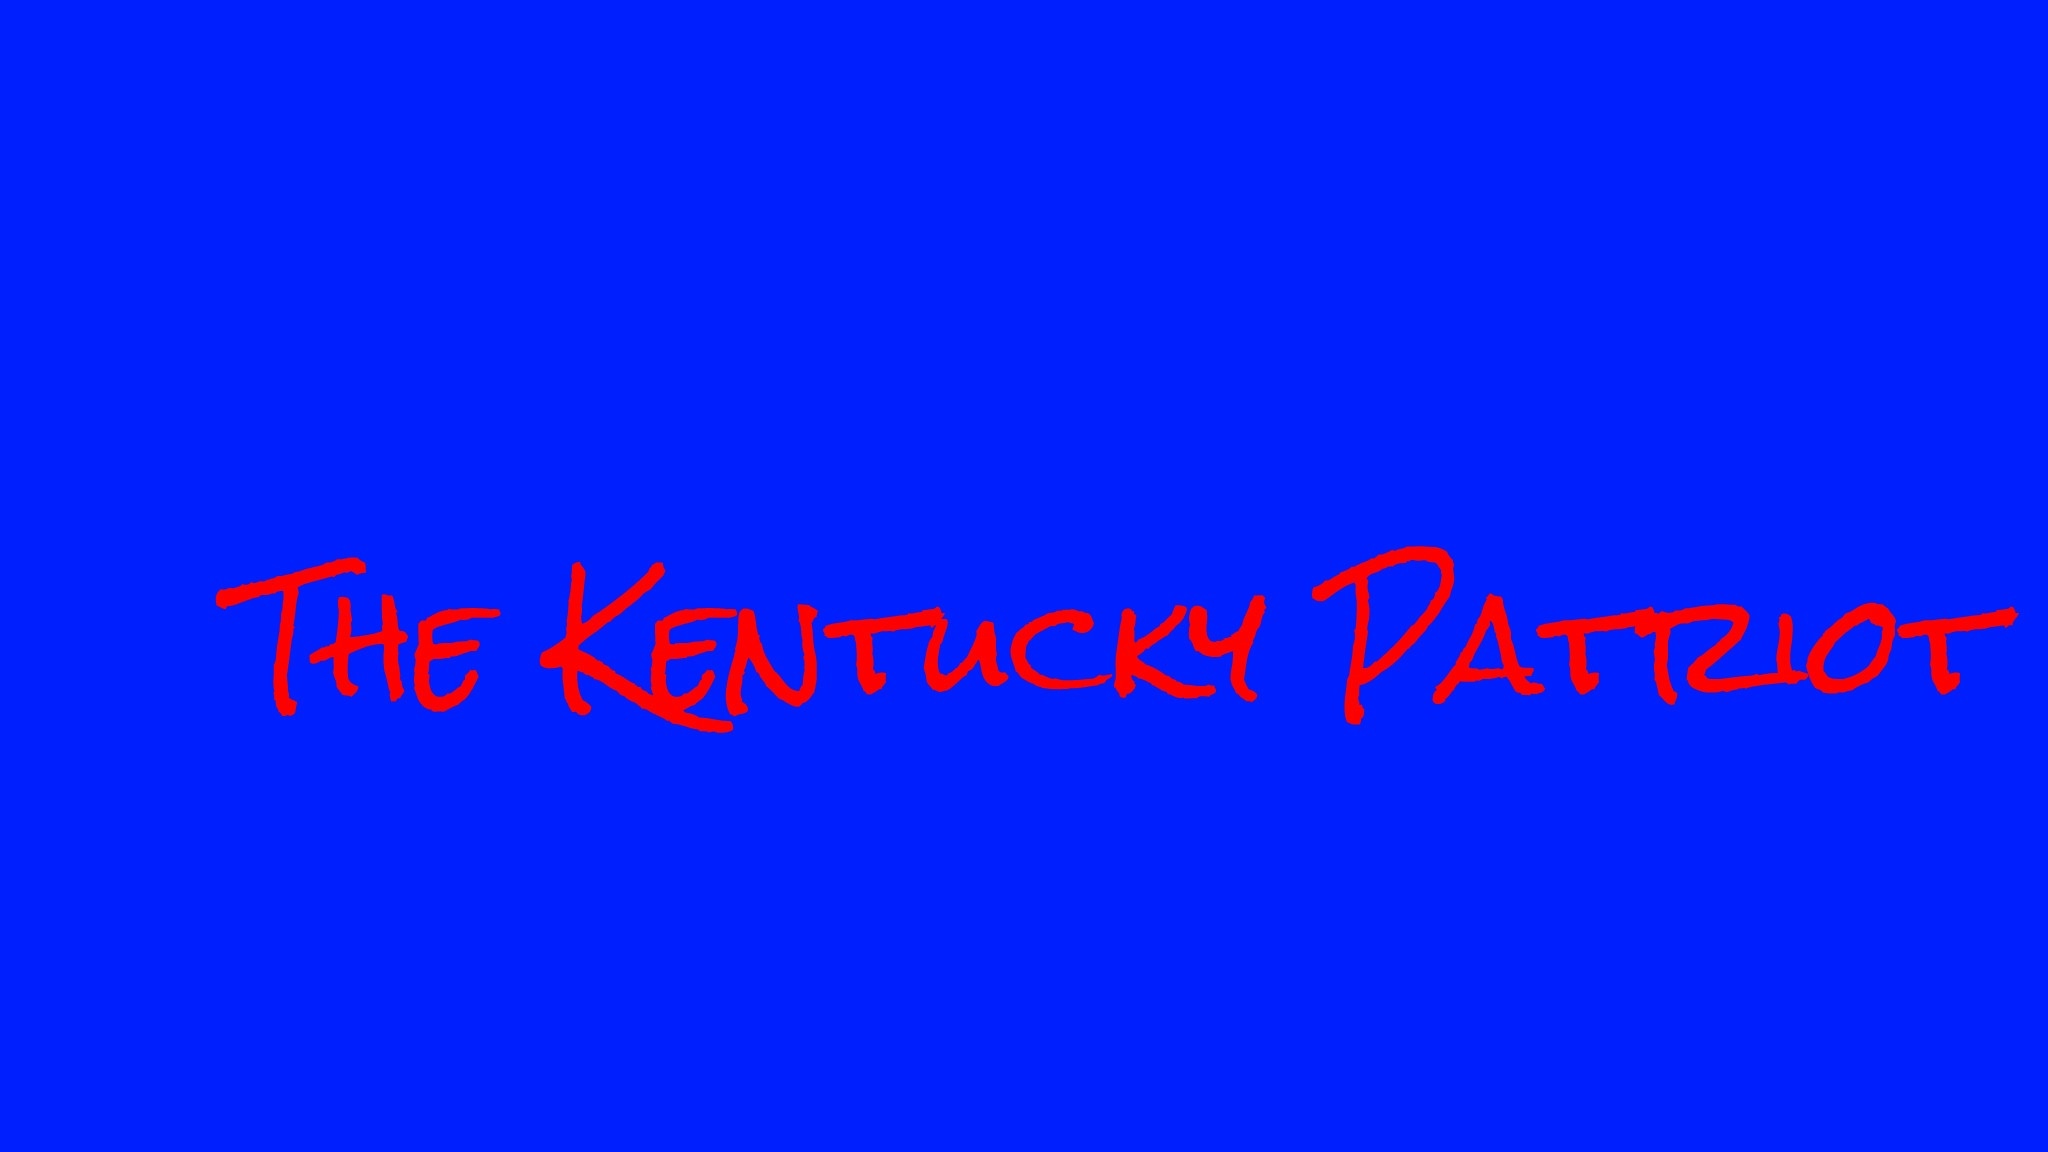 The Kentucky Patriot 2